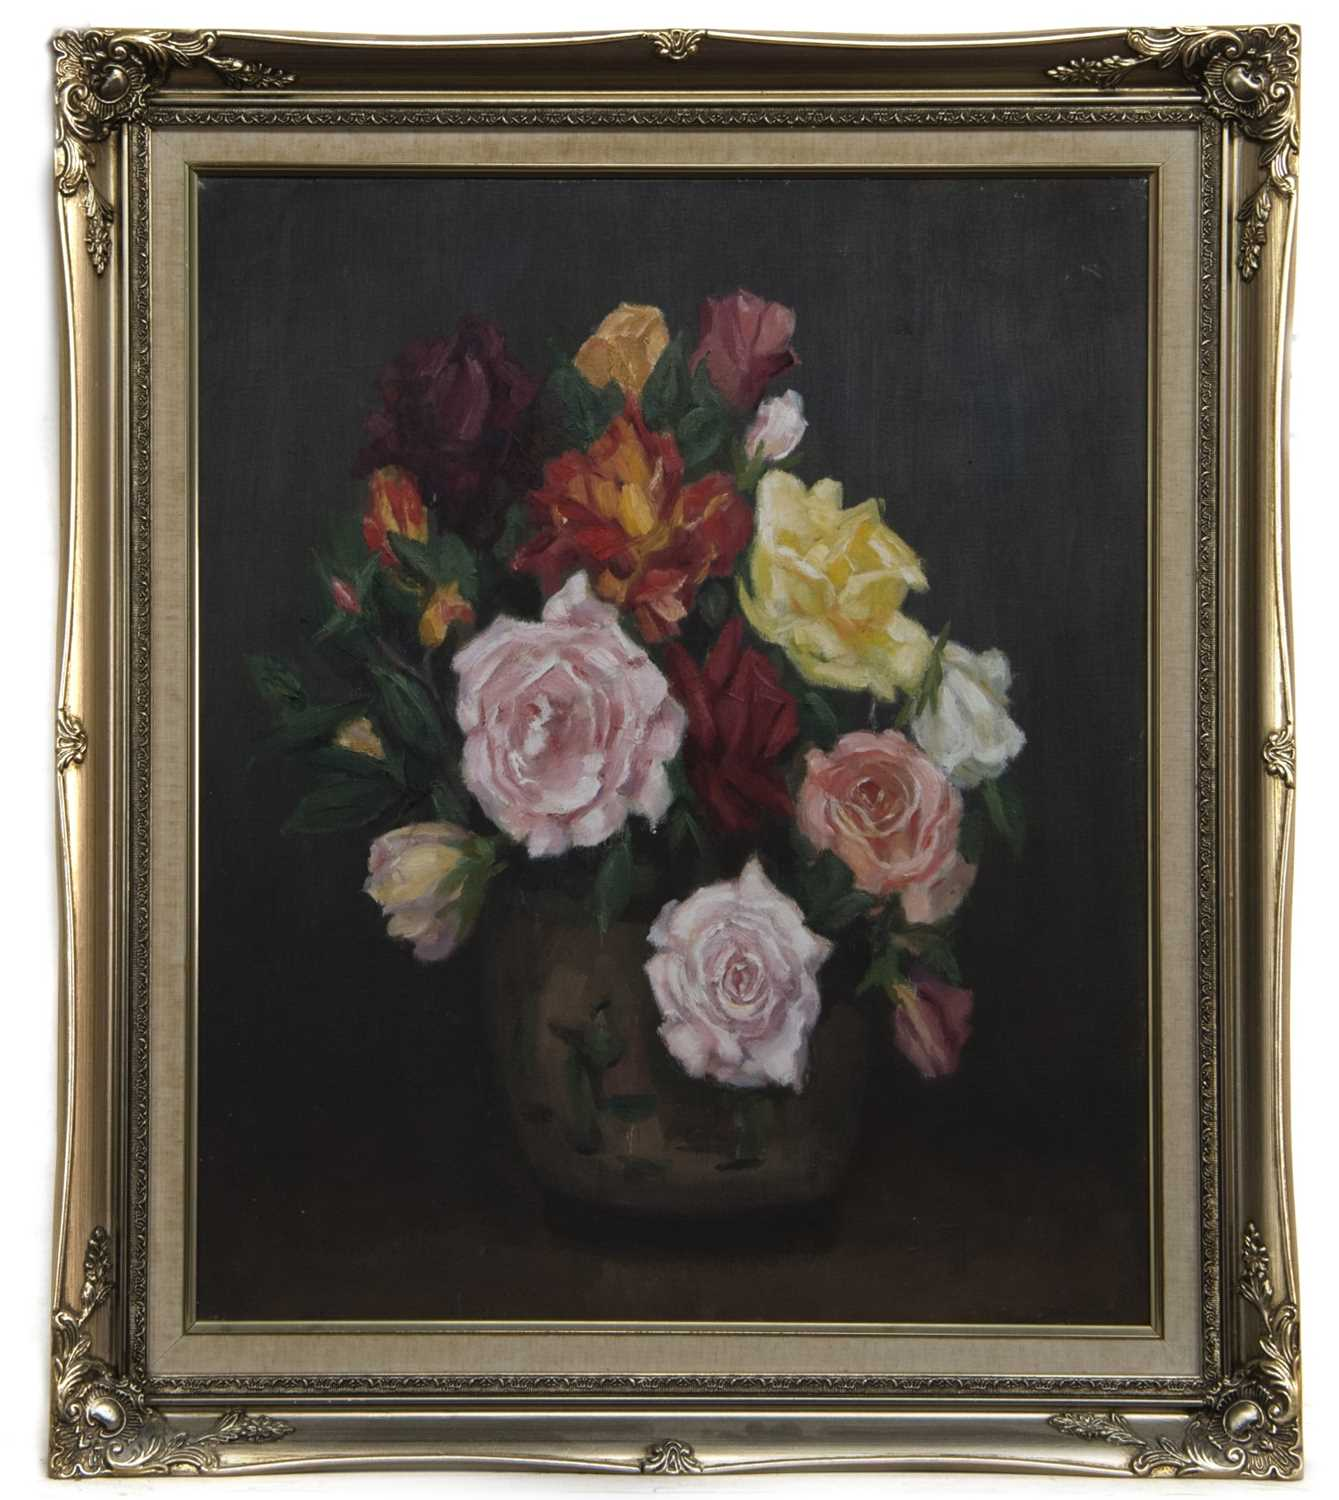 Lot 86 - FLORAL STILL LIFE, AN OIL BY WILLIAM WRIGHT CAMPBELL